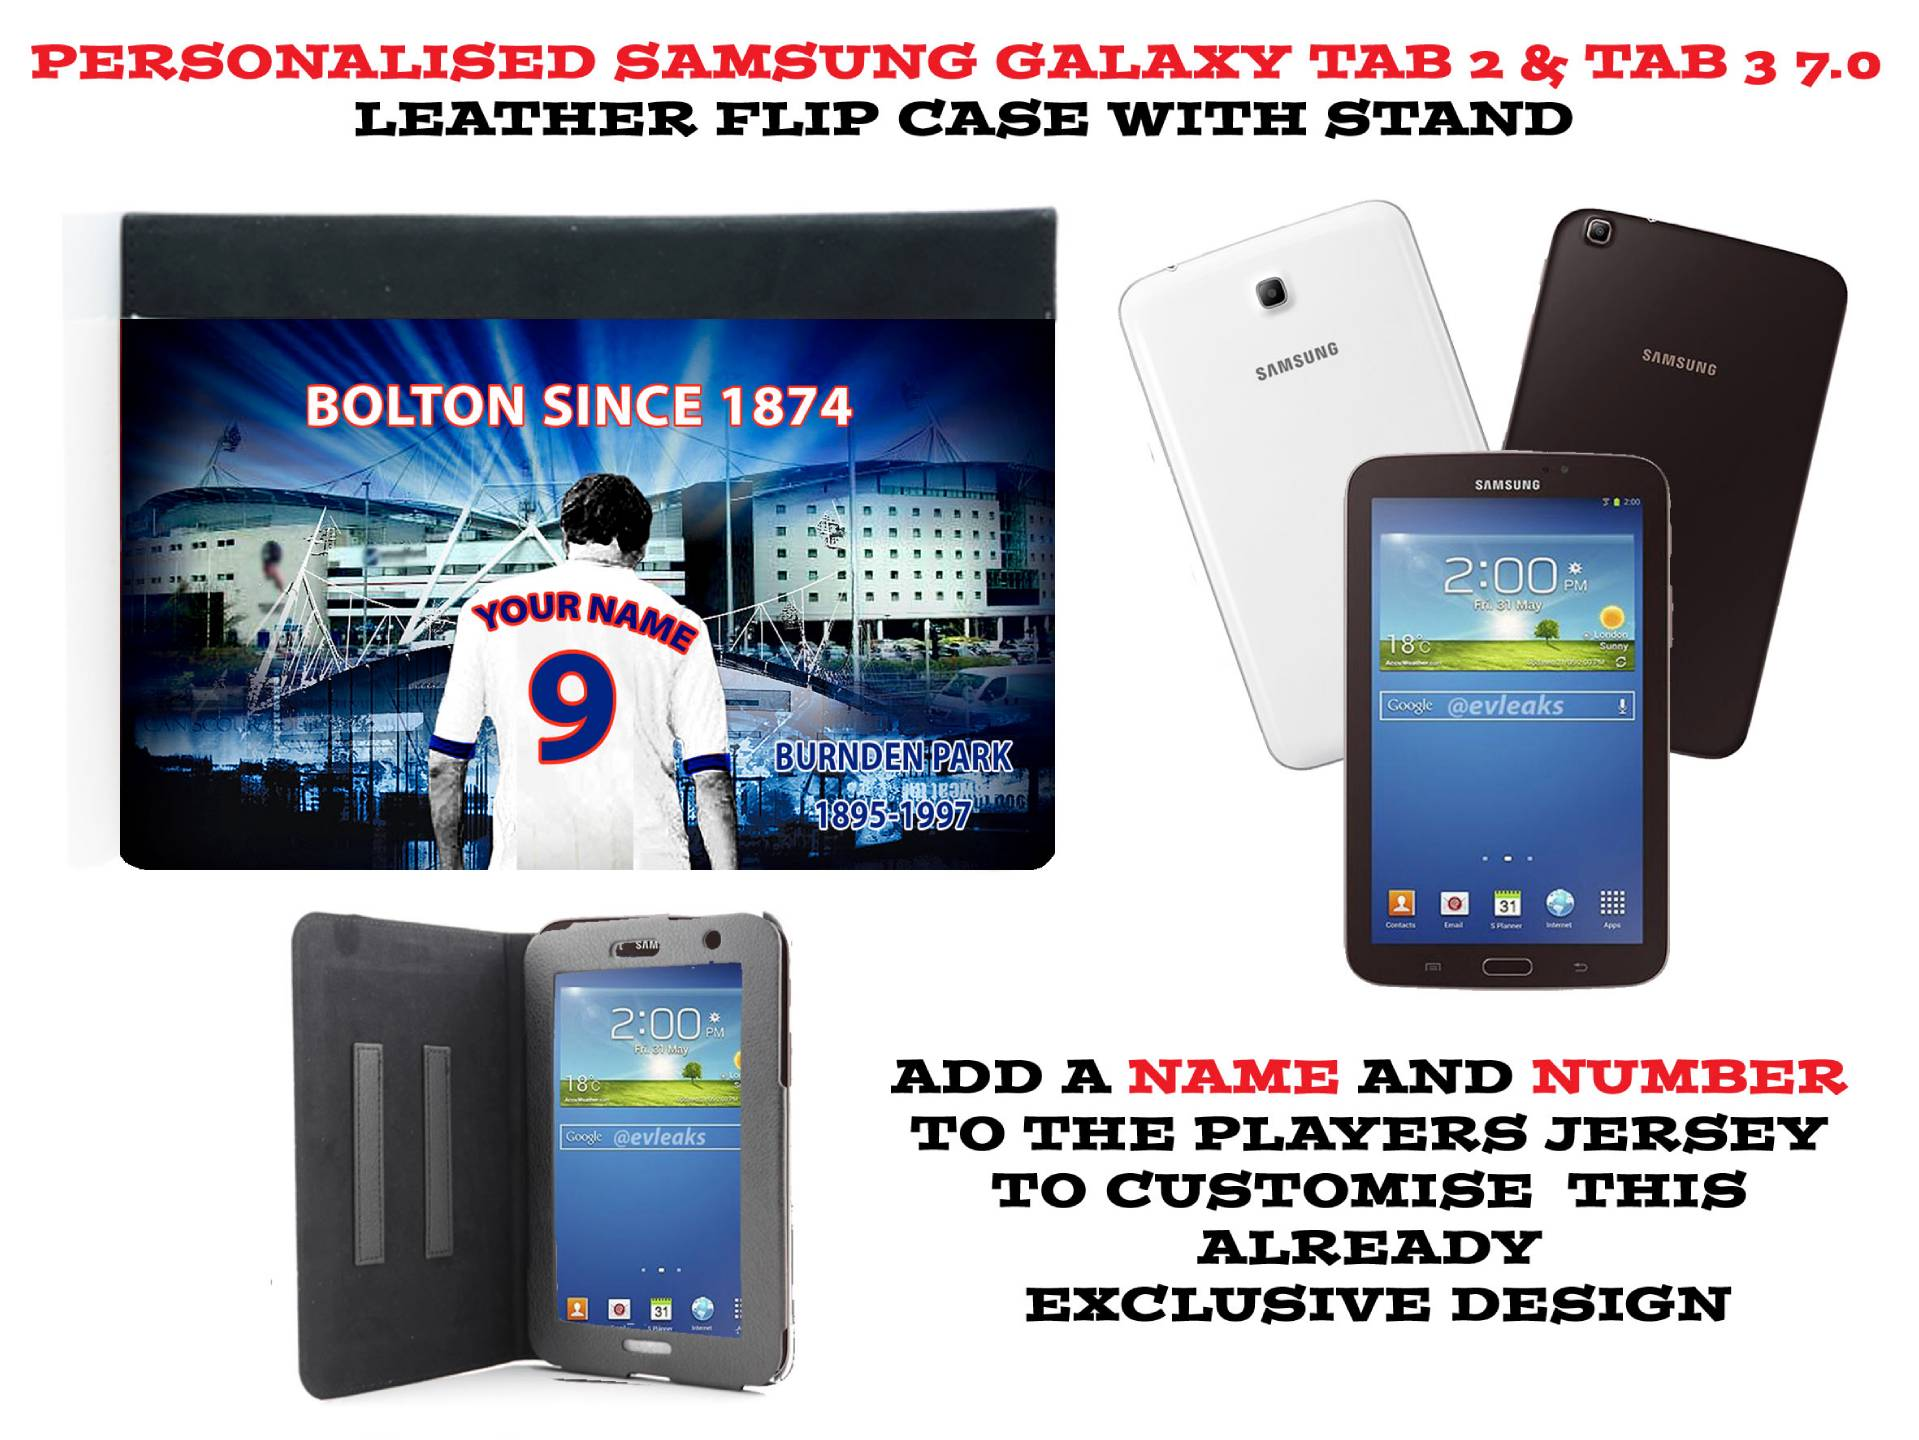 PERSONALISED-UNOFFICIAL-BOLTON-WANDERERS-SAMSUNG-GALAXY-TAB-7-0-PU-LEATHER-CASE